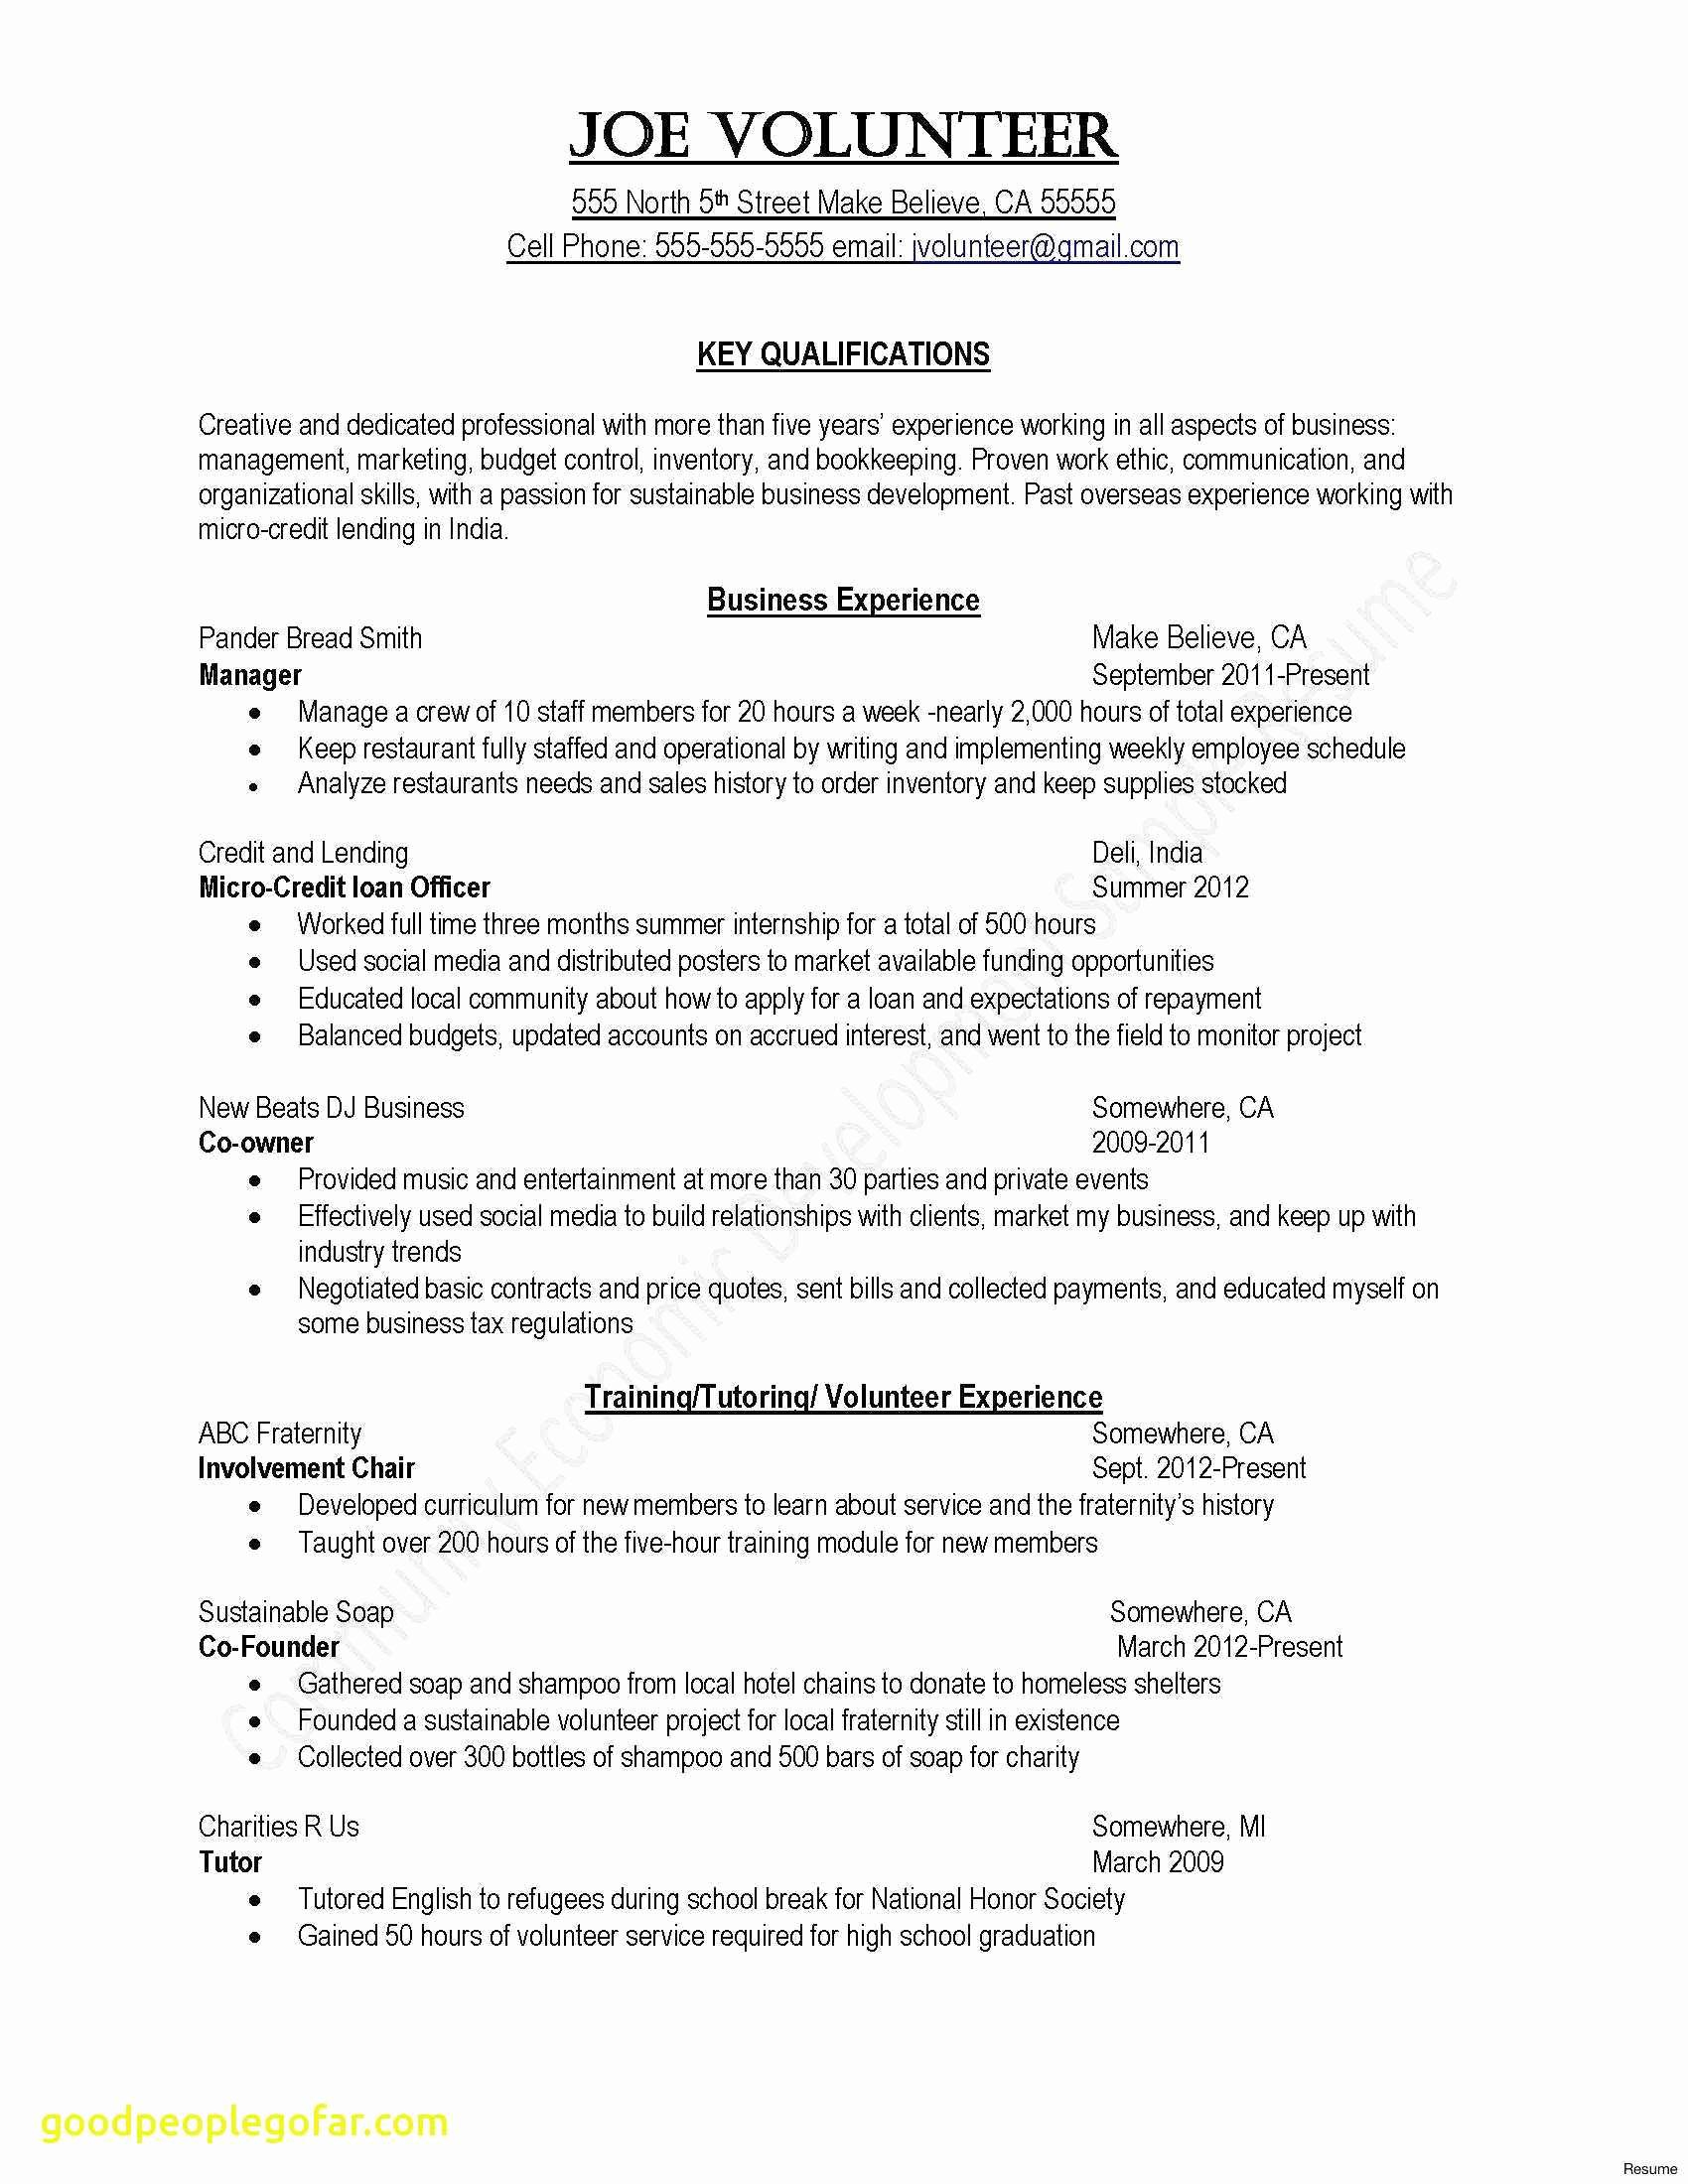 Resume for Videographer - Awesome Videographer Resume Sample